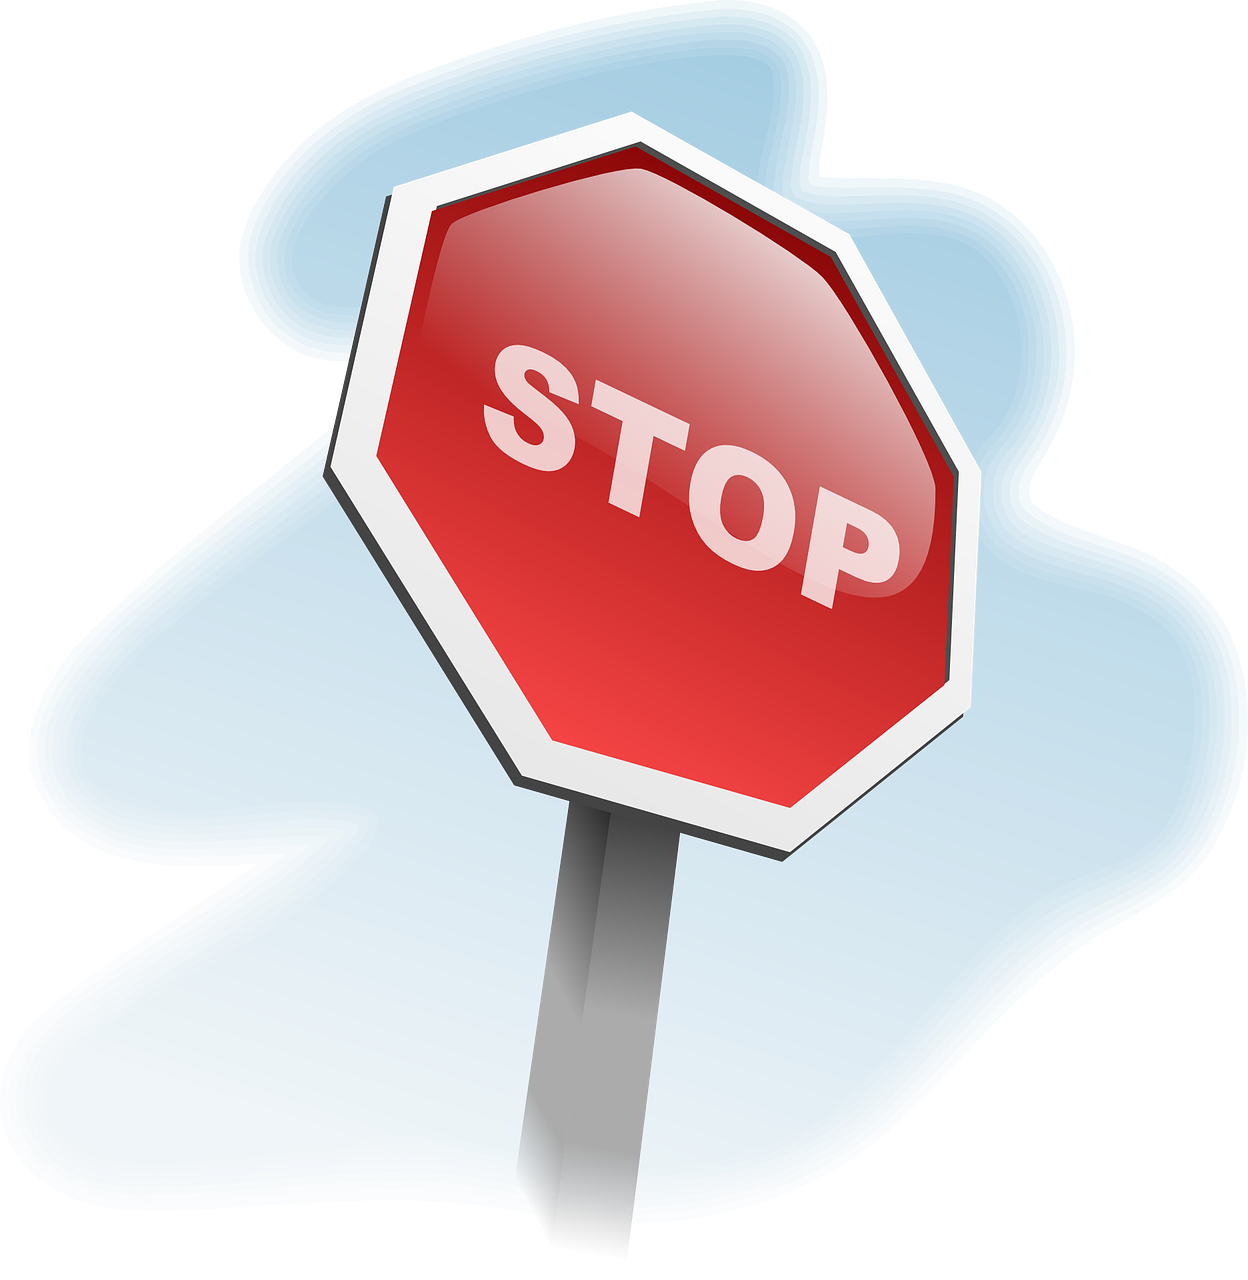 stop sign 37020 1280